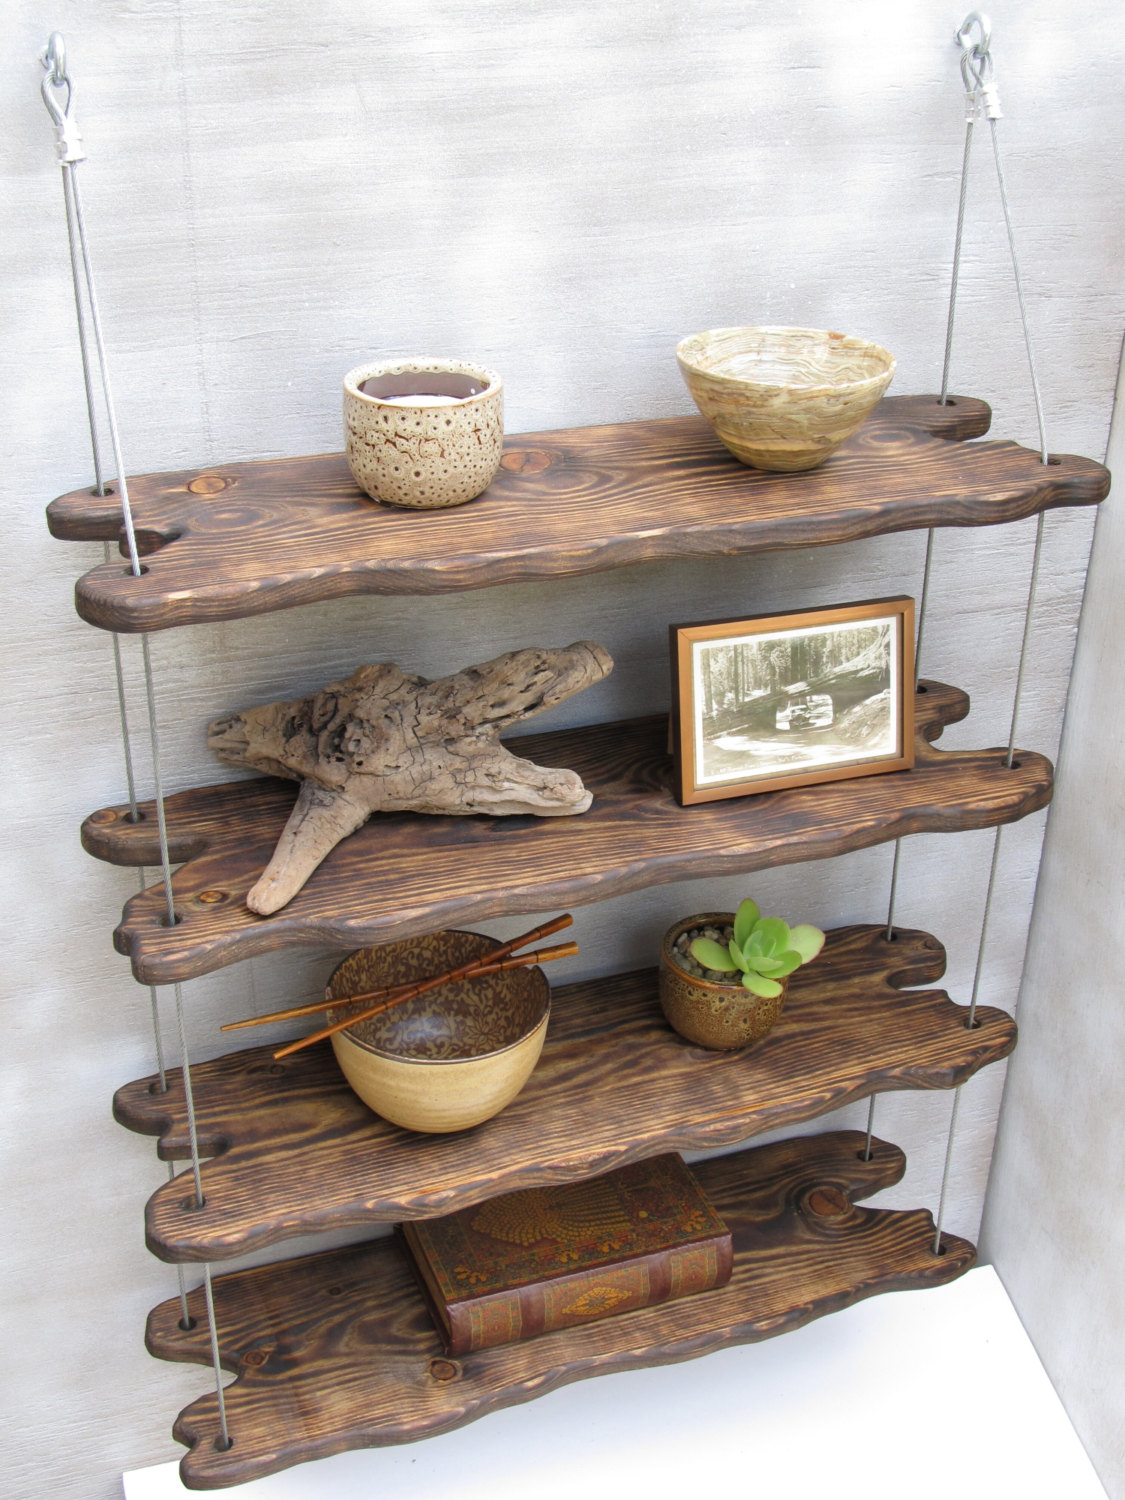 driftwood-shelves_home-decor-gifts